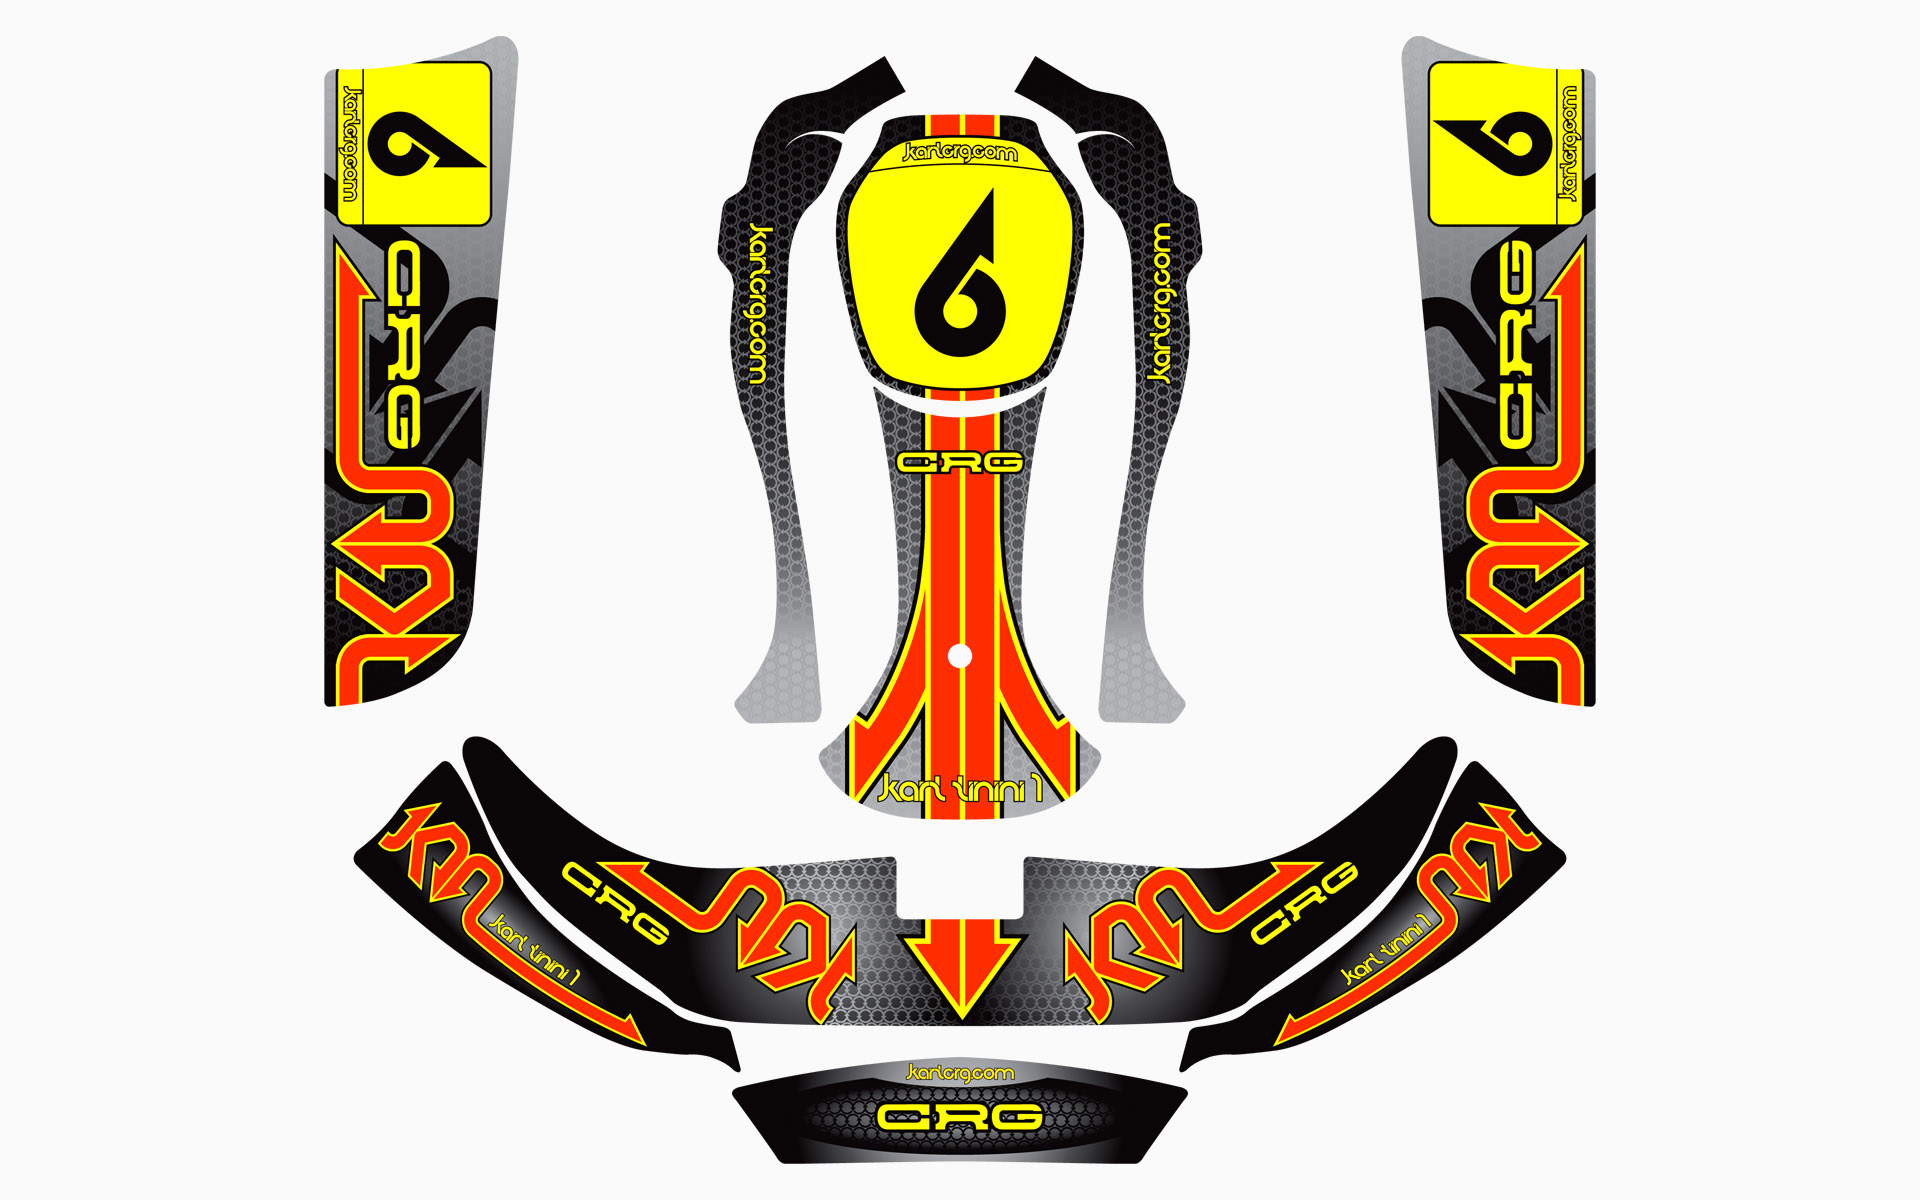 CRG Kart Tinini Factory Kart Livery Decal Kit